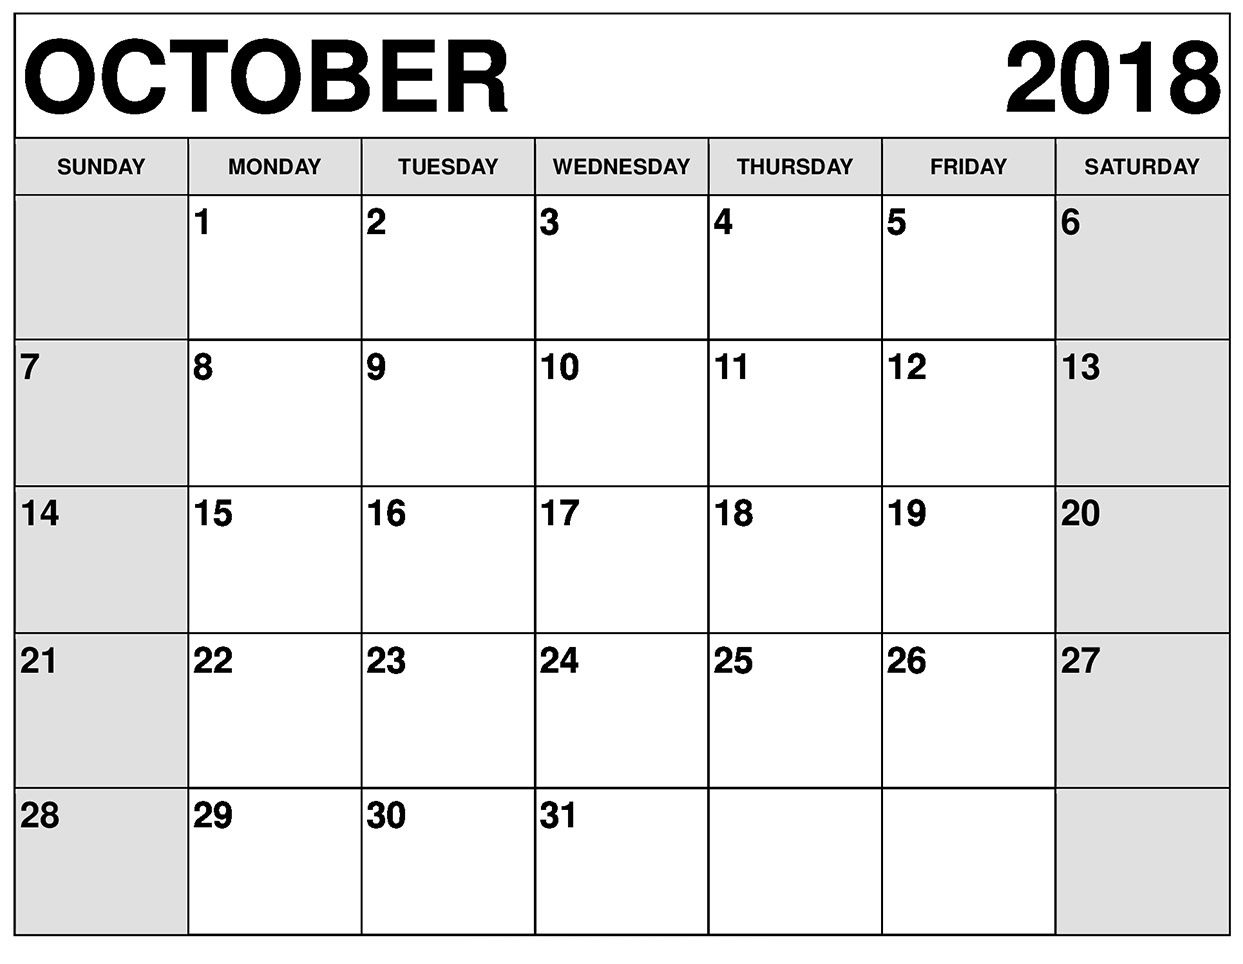 October 2018 Printable Calendar With Holidays